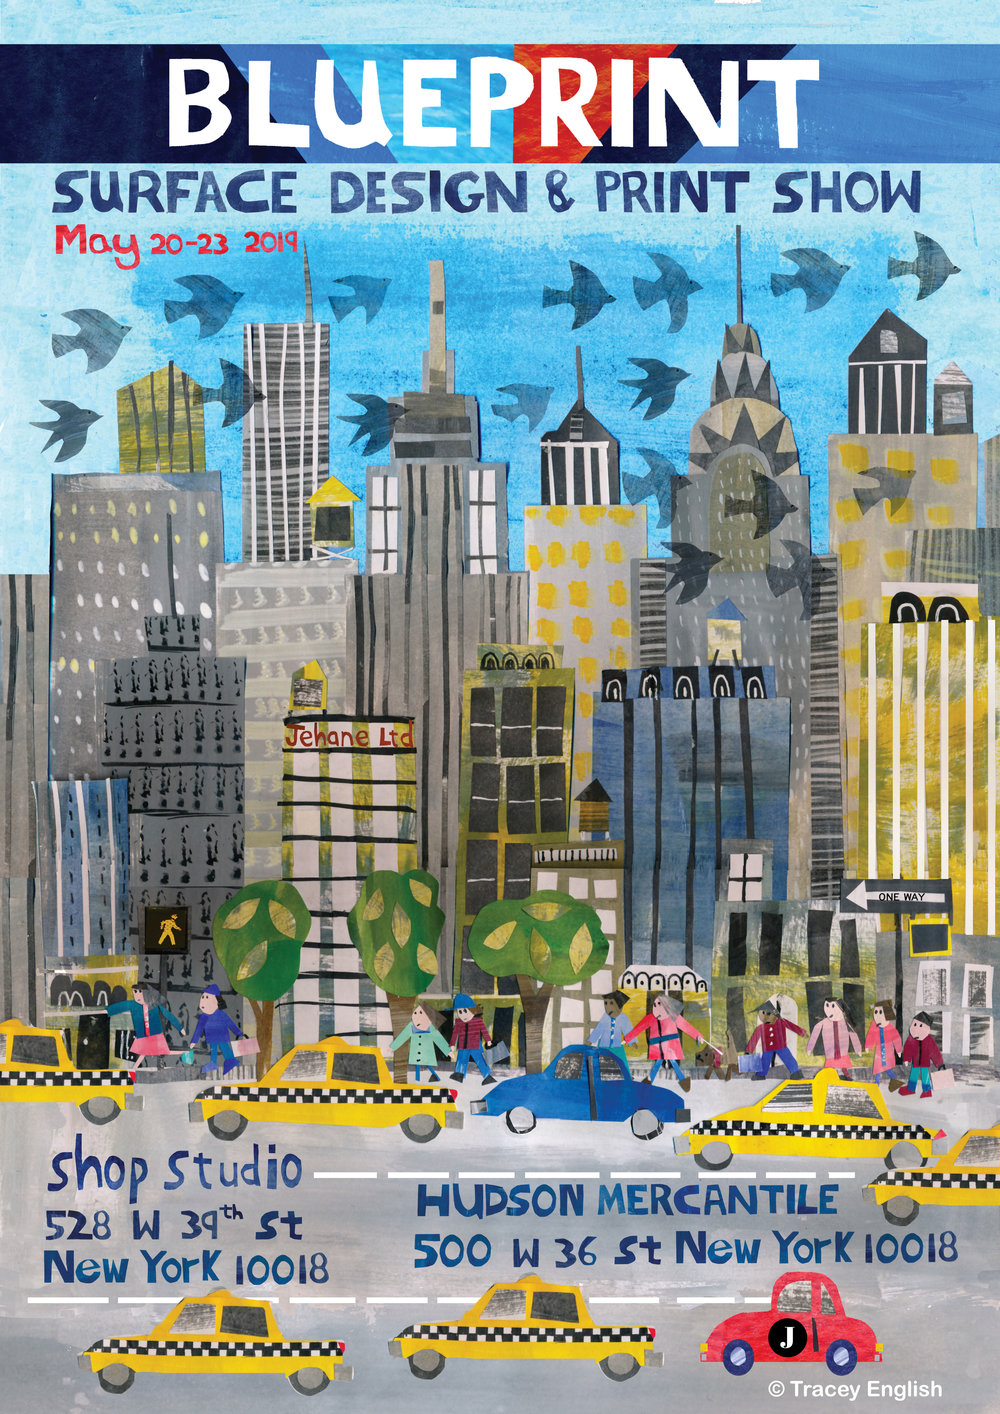 Tracey English - Jehane Ltd - poster for Blueprint New York - May 2019. JEHANE Ltd will be exhibiting at the Shop Studio venue.